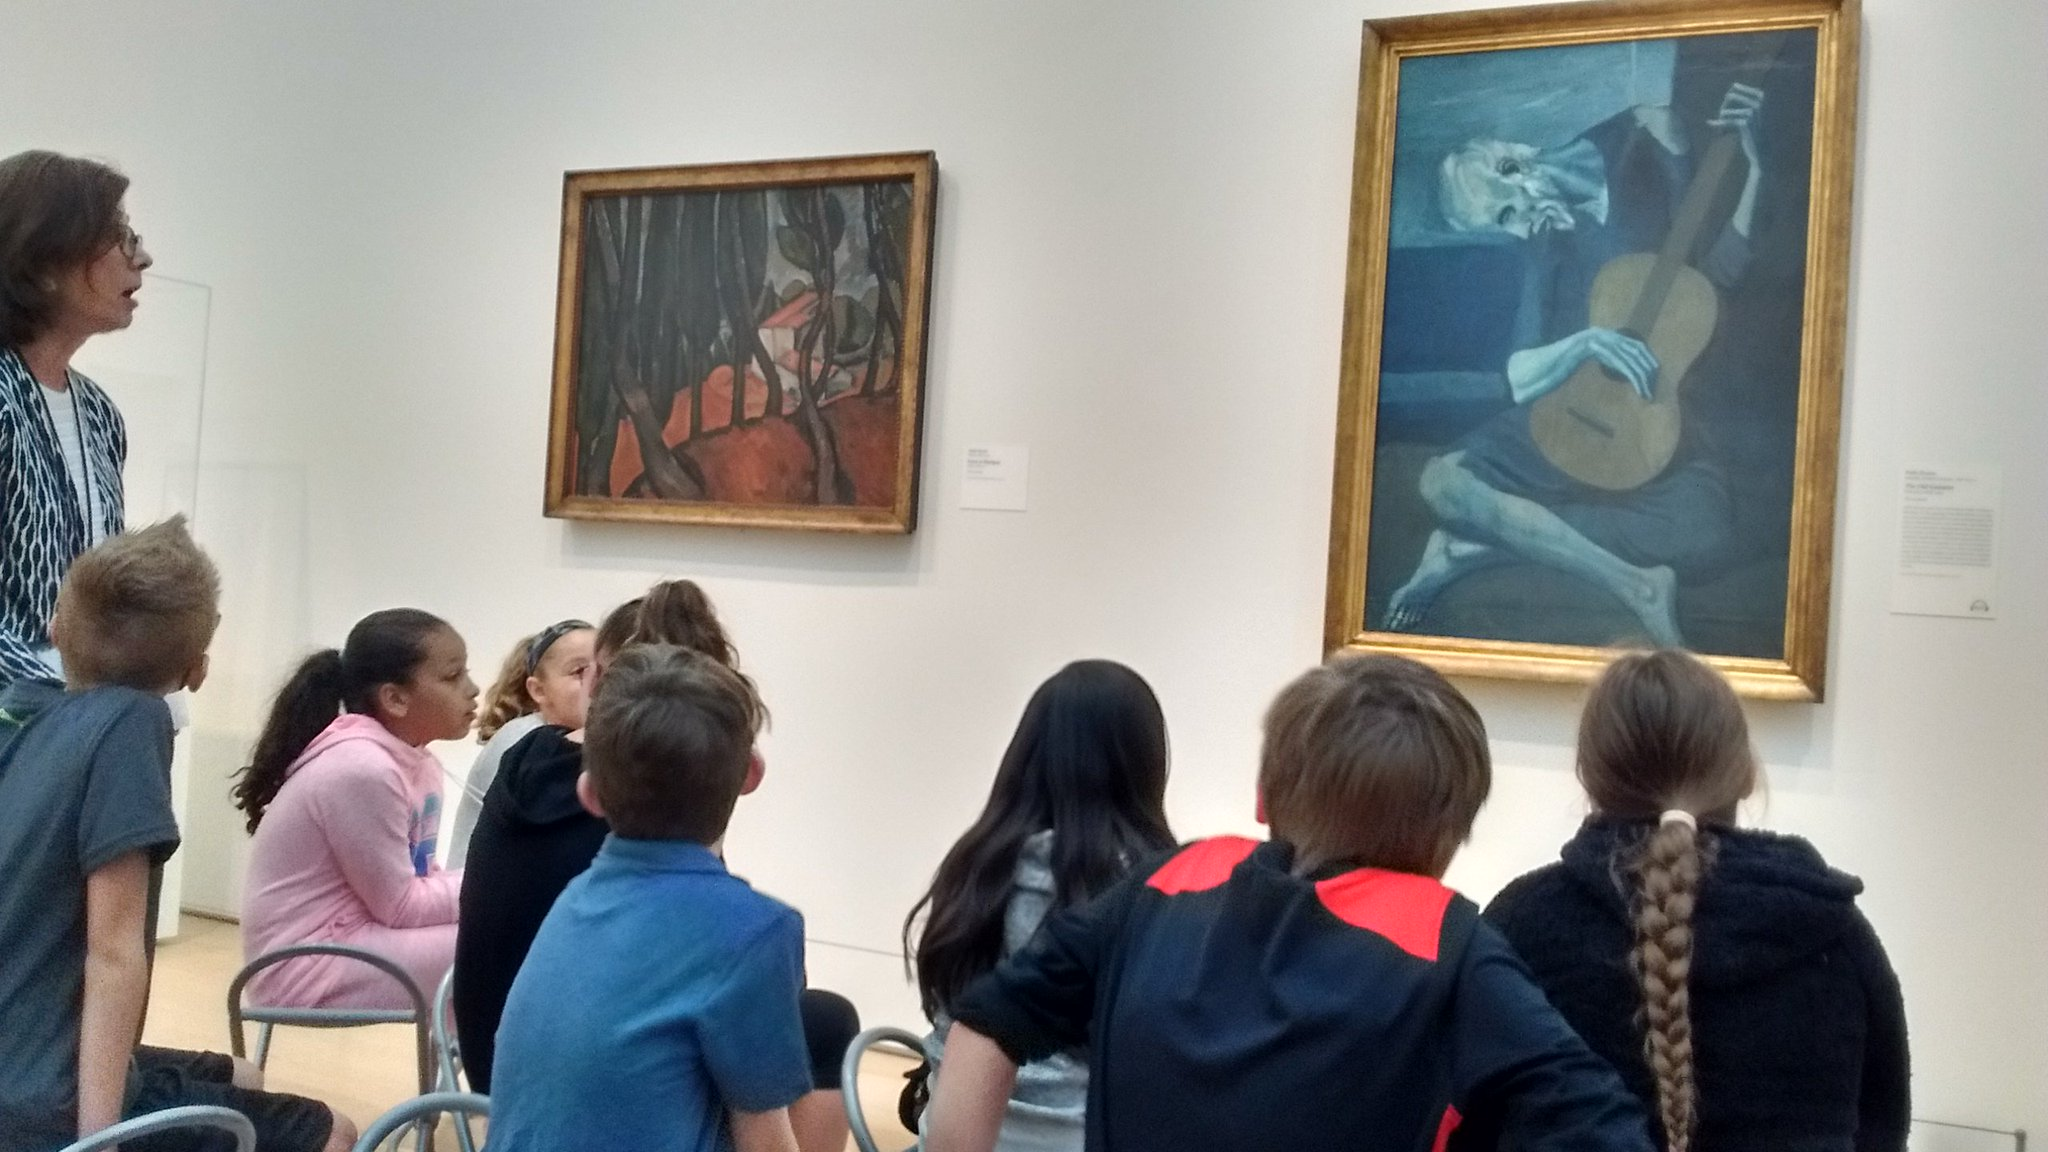 Thinking about the story behind the painting.@fuglefun #drydenartic Noticing how Picasso used color to create a somber mood. https://t.co/MwGLtNrSqm